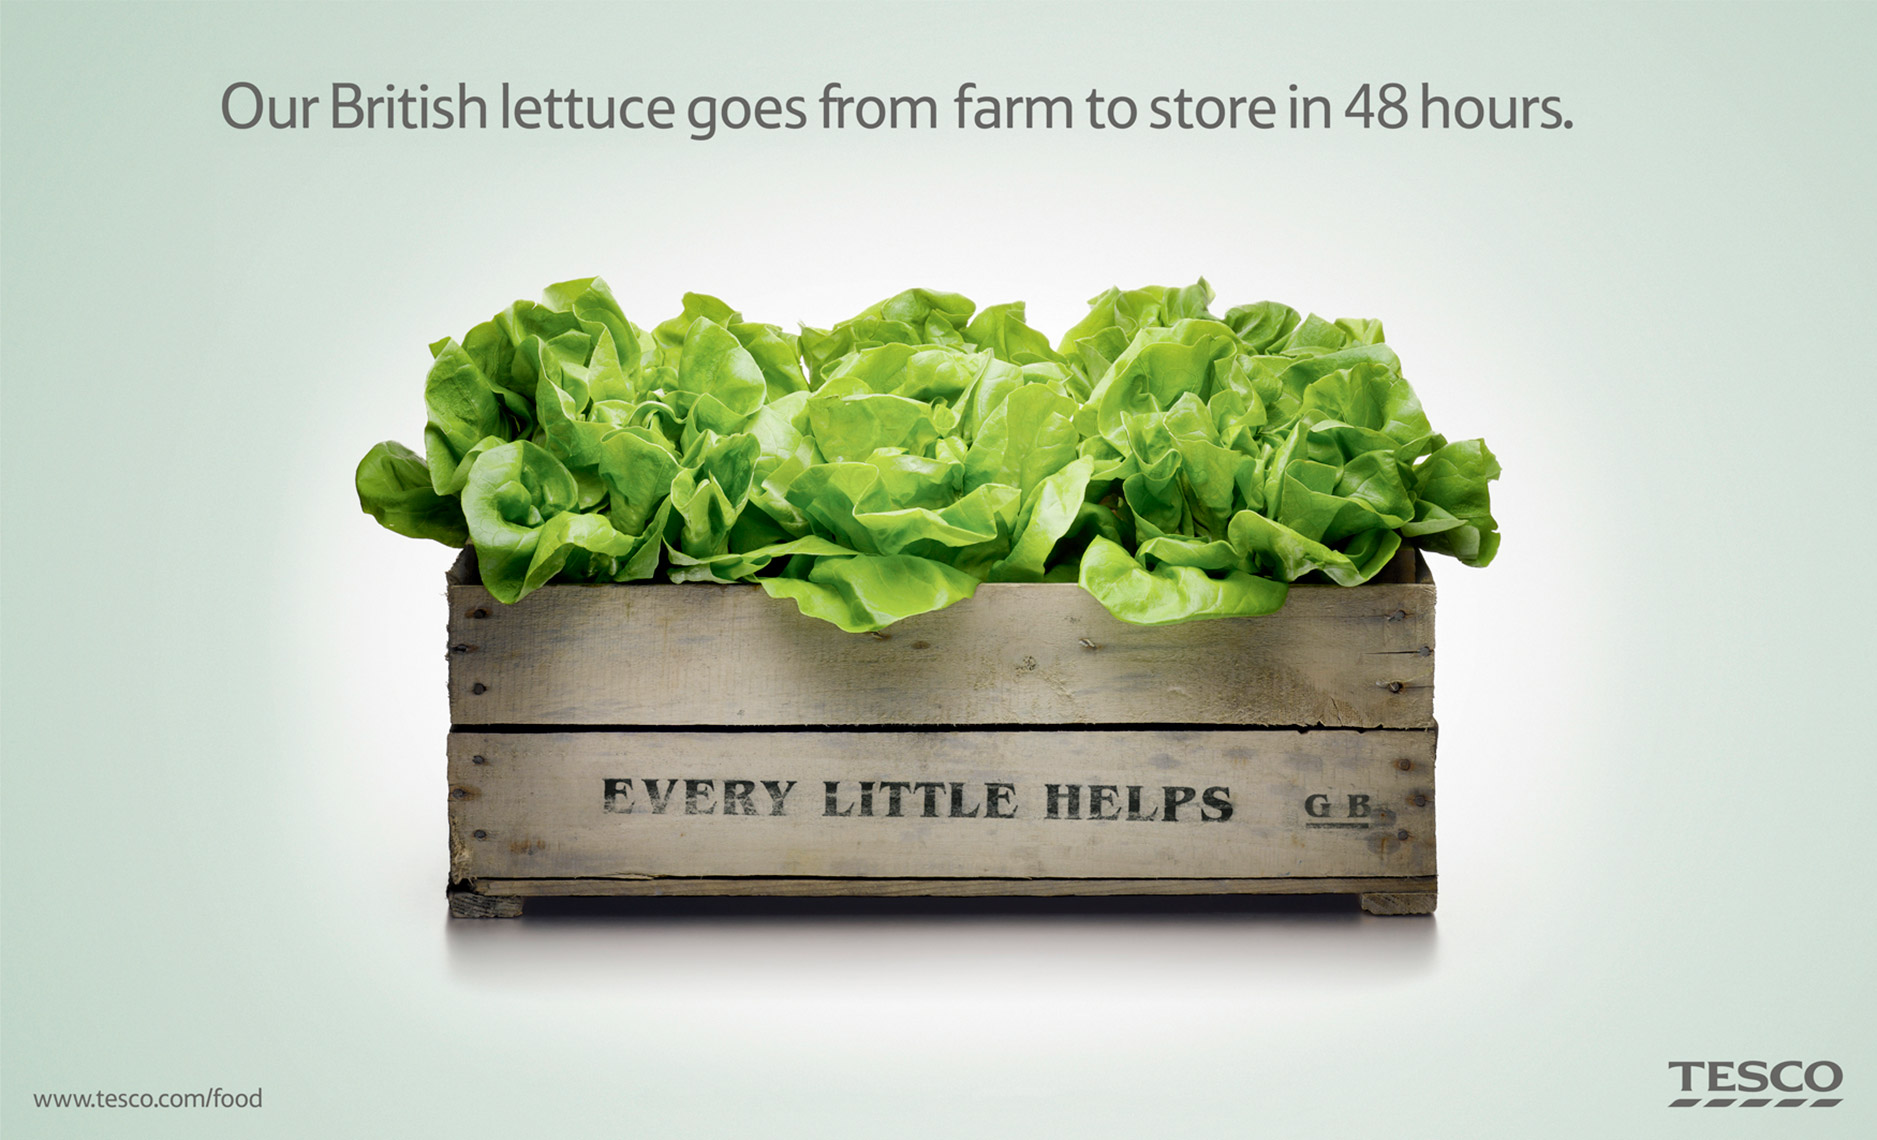 Tesco Lettuce | Colin Campbell-Food Photographer